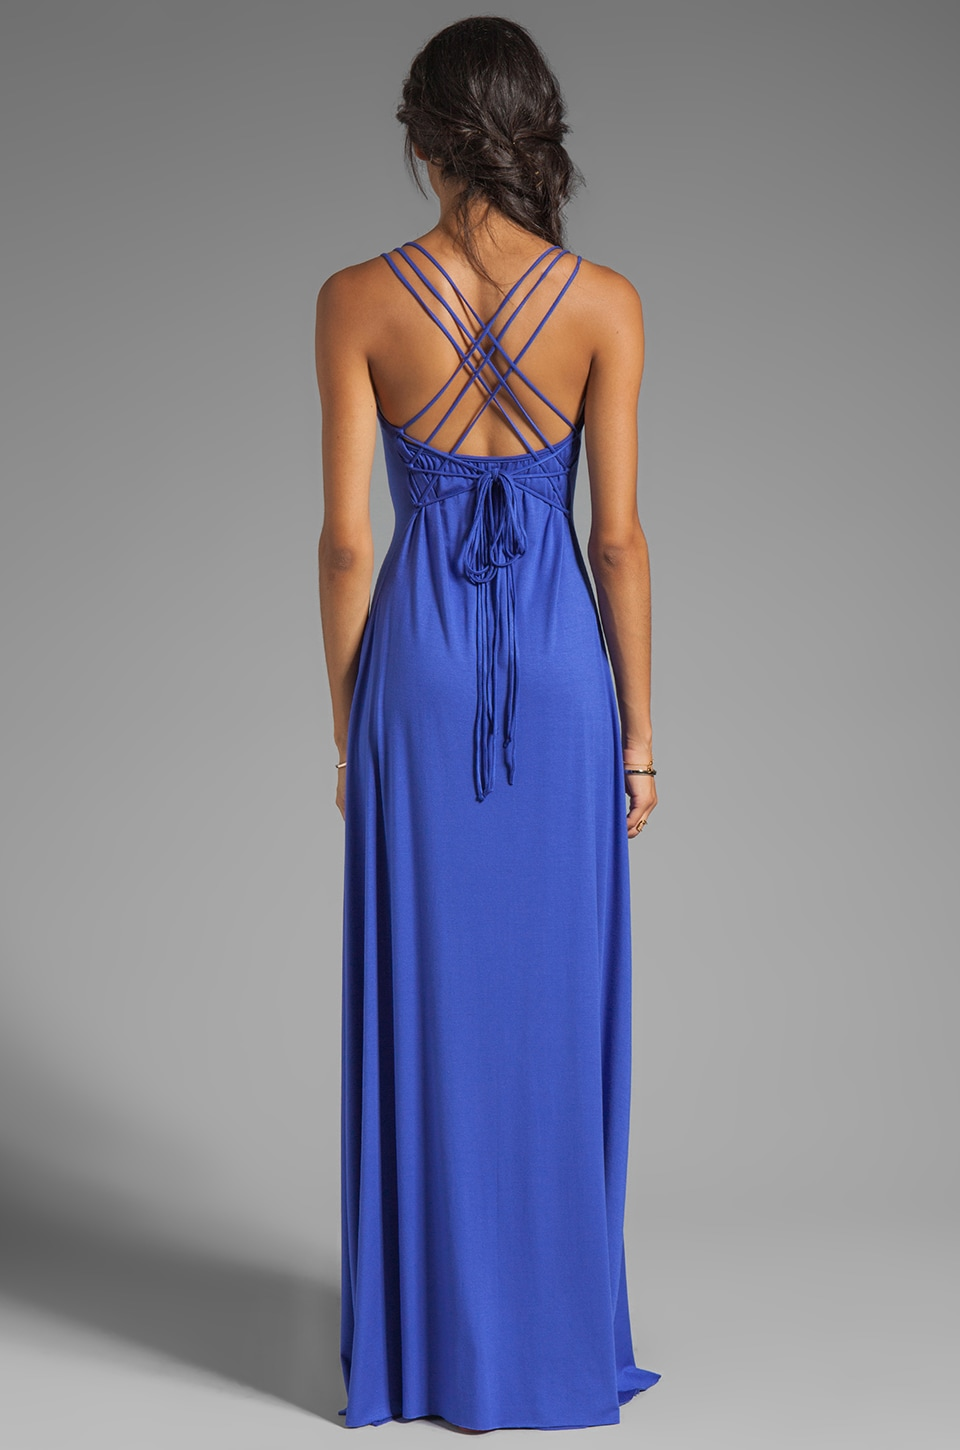 Rachel Pally Gaya Maxi Dress in River